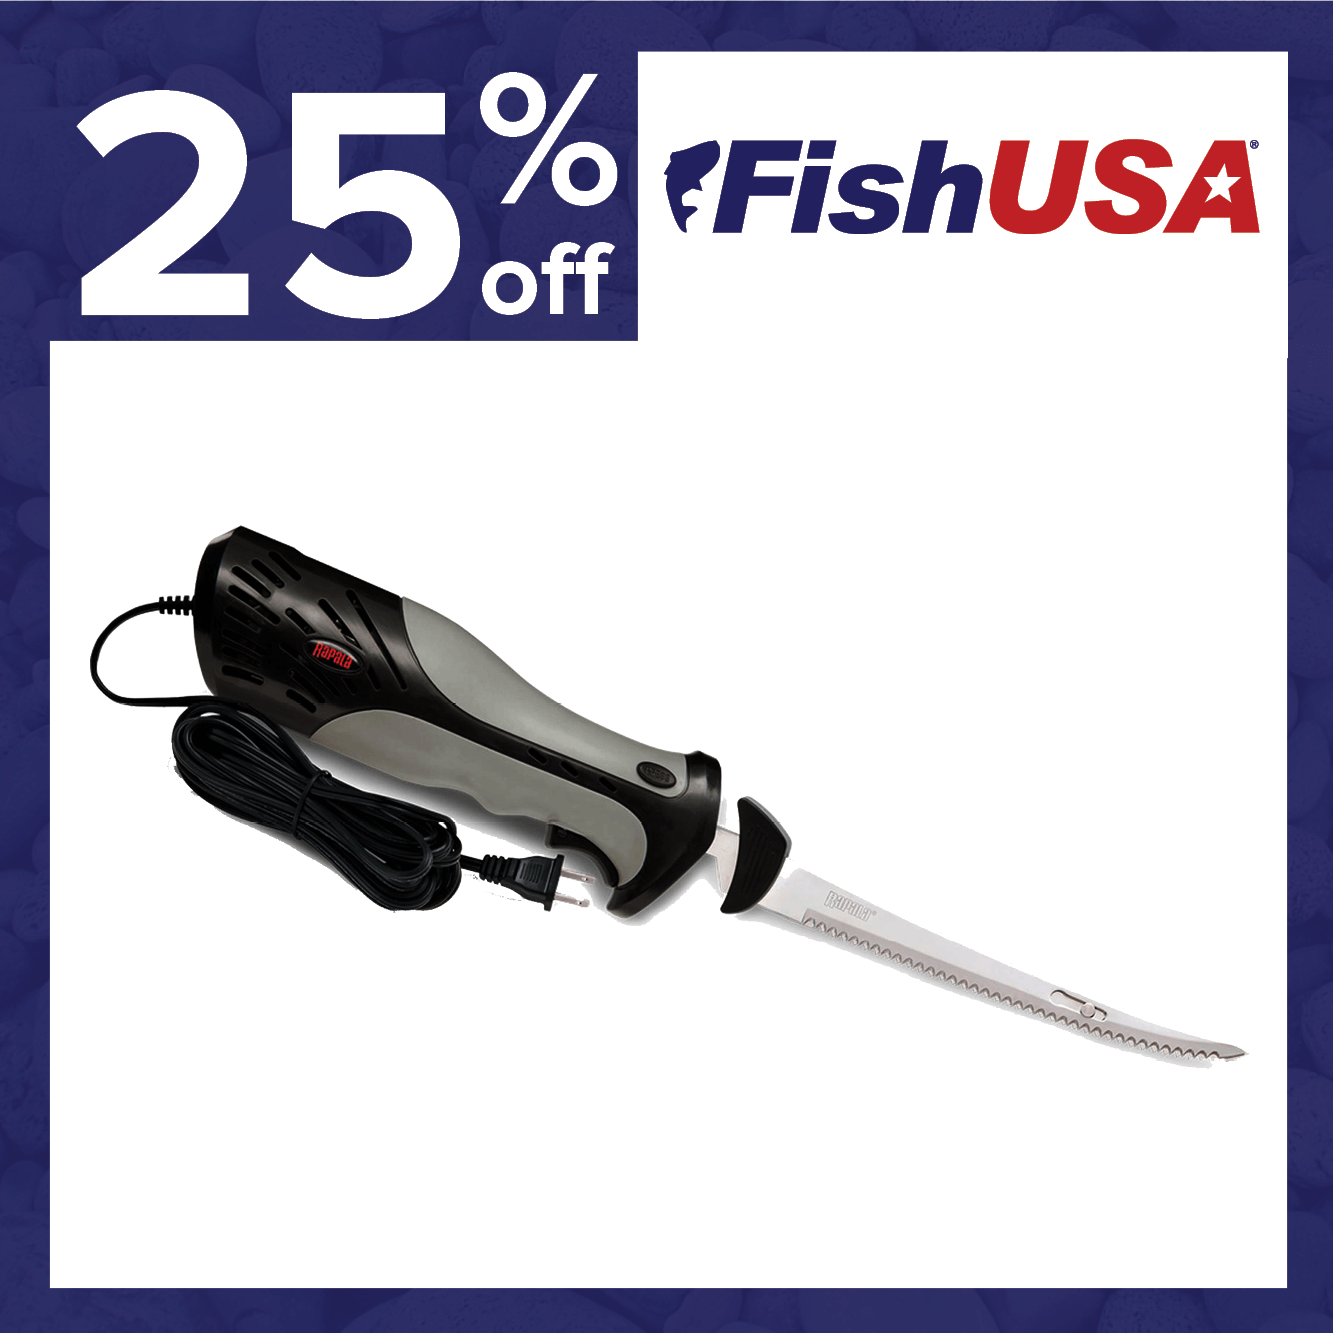 25% off the Rapala Heavy-Duty Electric Fillet Knife